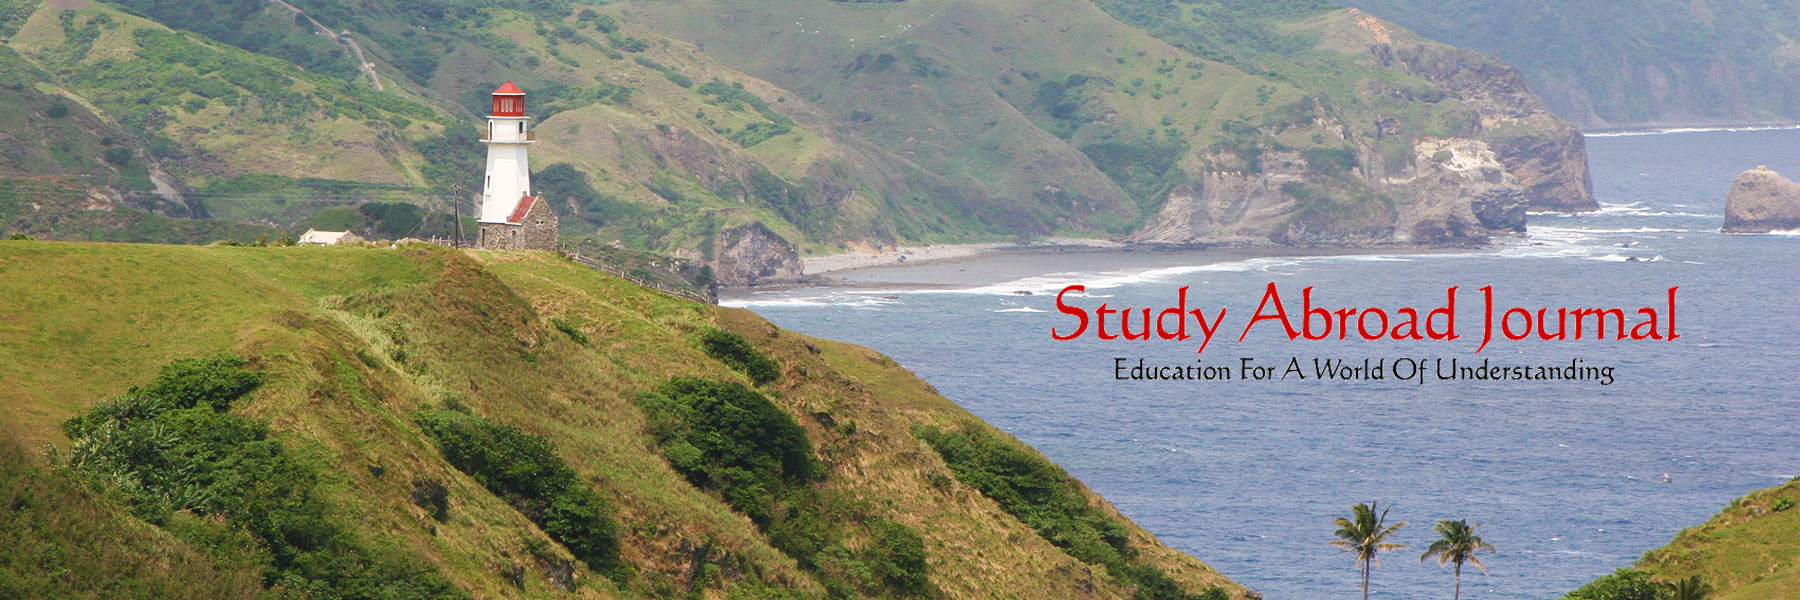 Batanes Islands - Southeast Asian Civilization - Dr Steven Andrew Martin